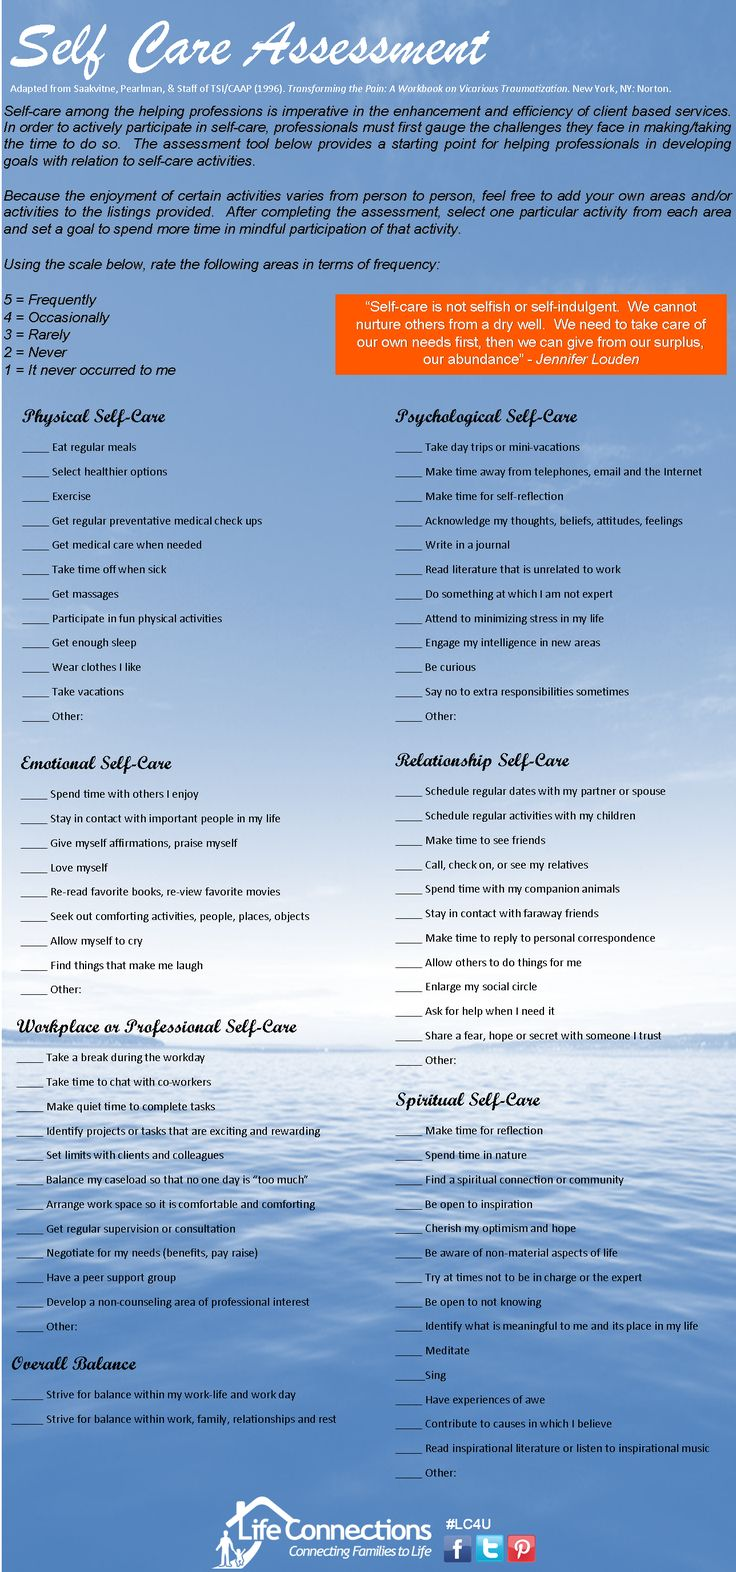 Self Care Assessment Art Therapy Pinterest